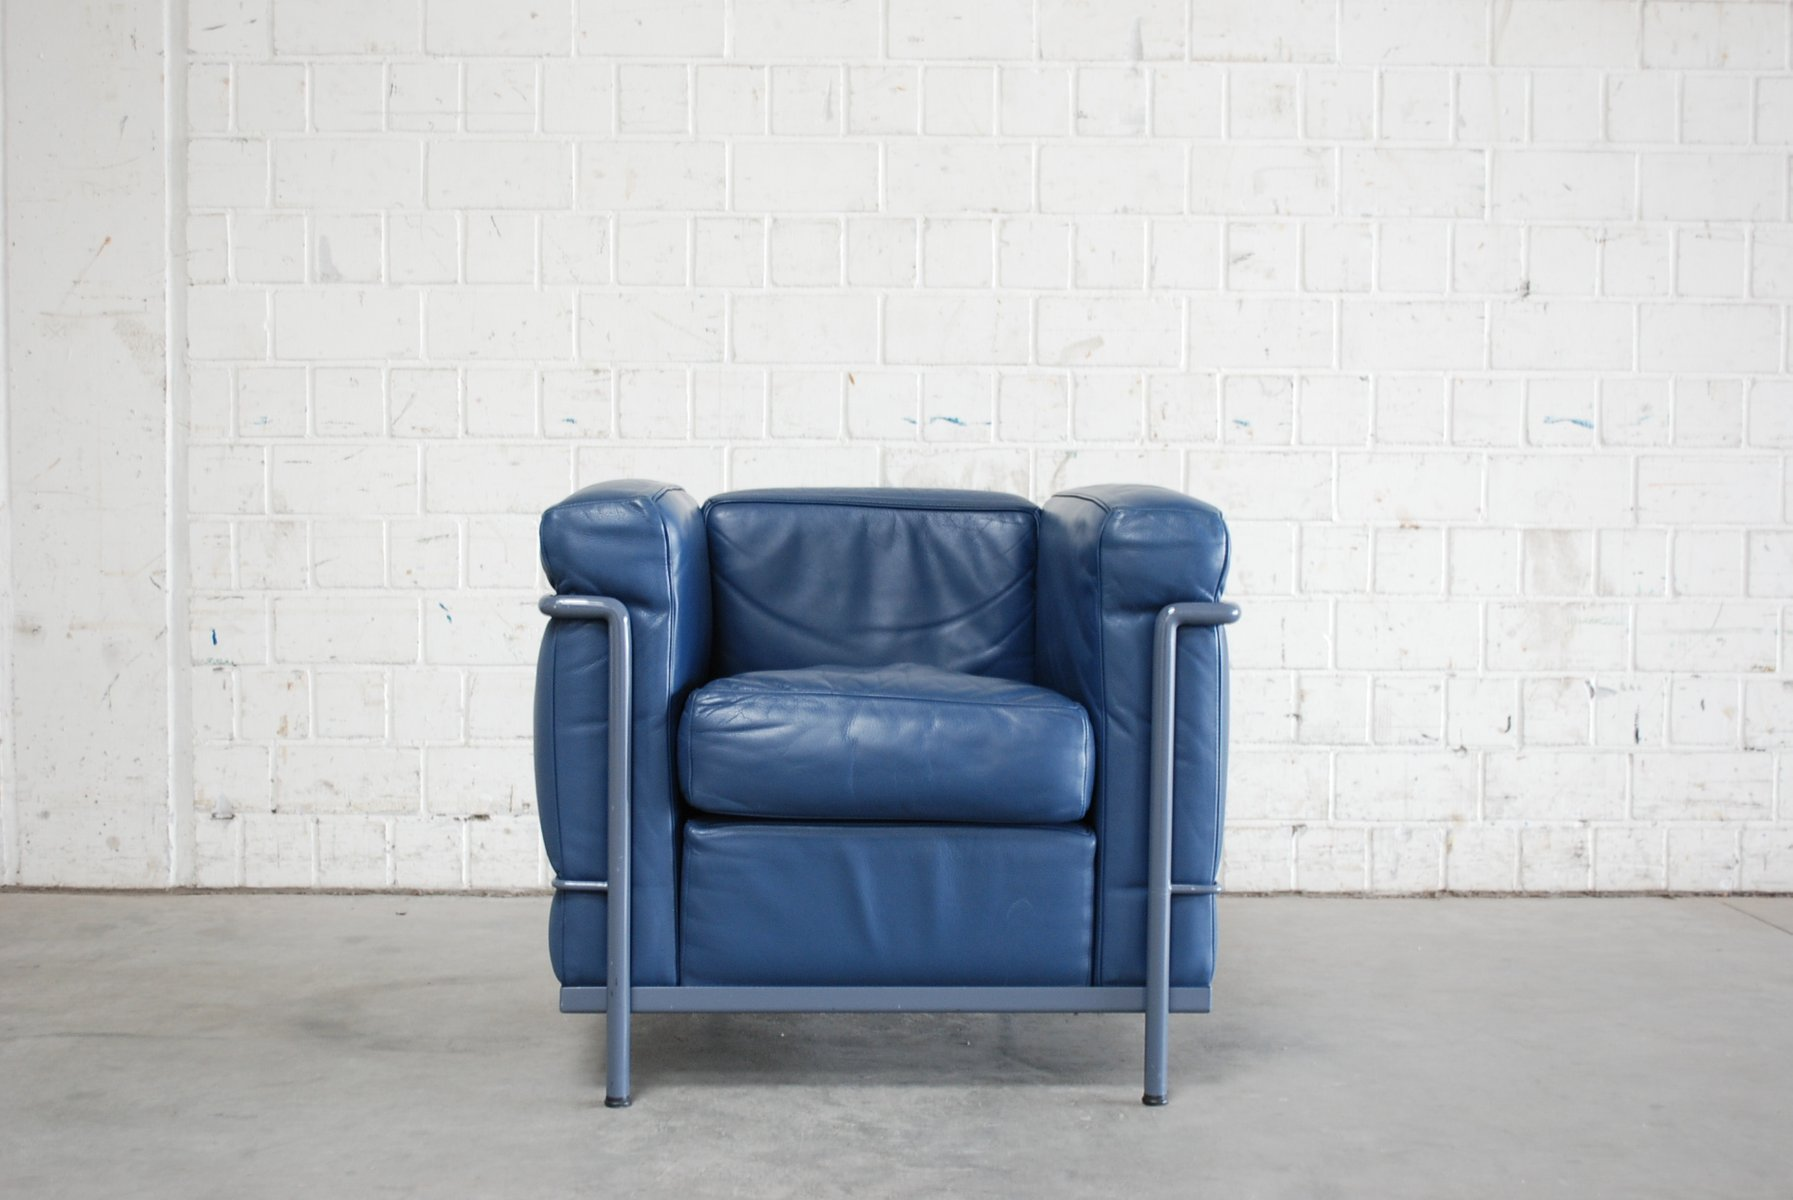 vintage blue model lc2 leather chair by le corbusier for. Black Bedroom Furniture Sets. Home Design Ideas